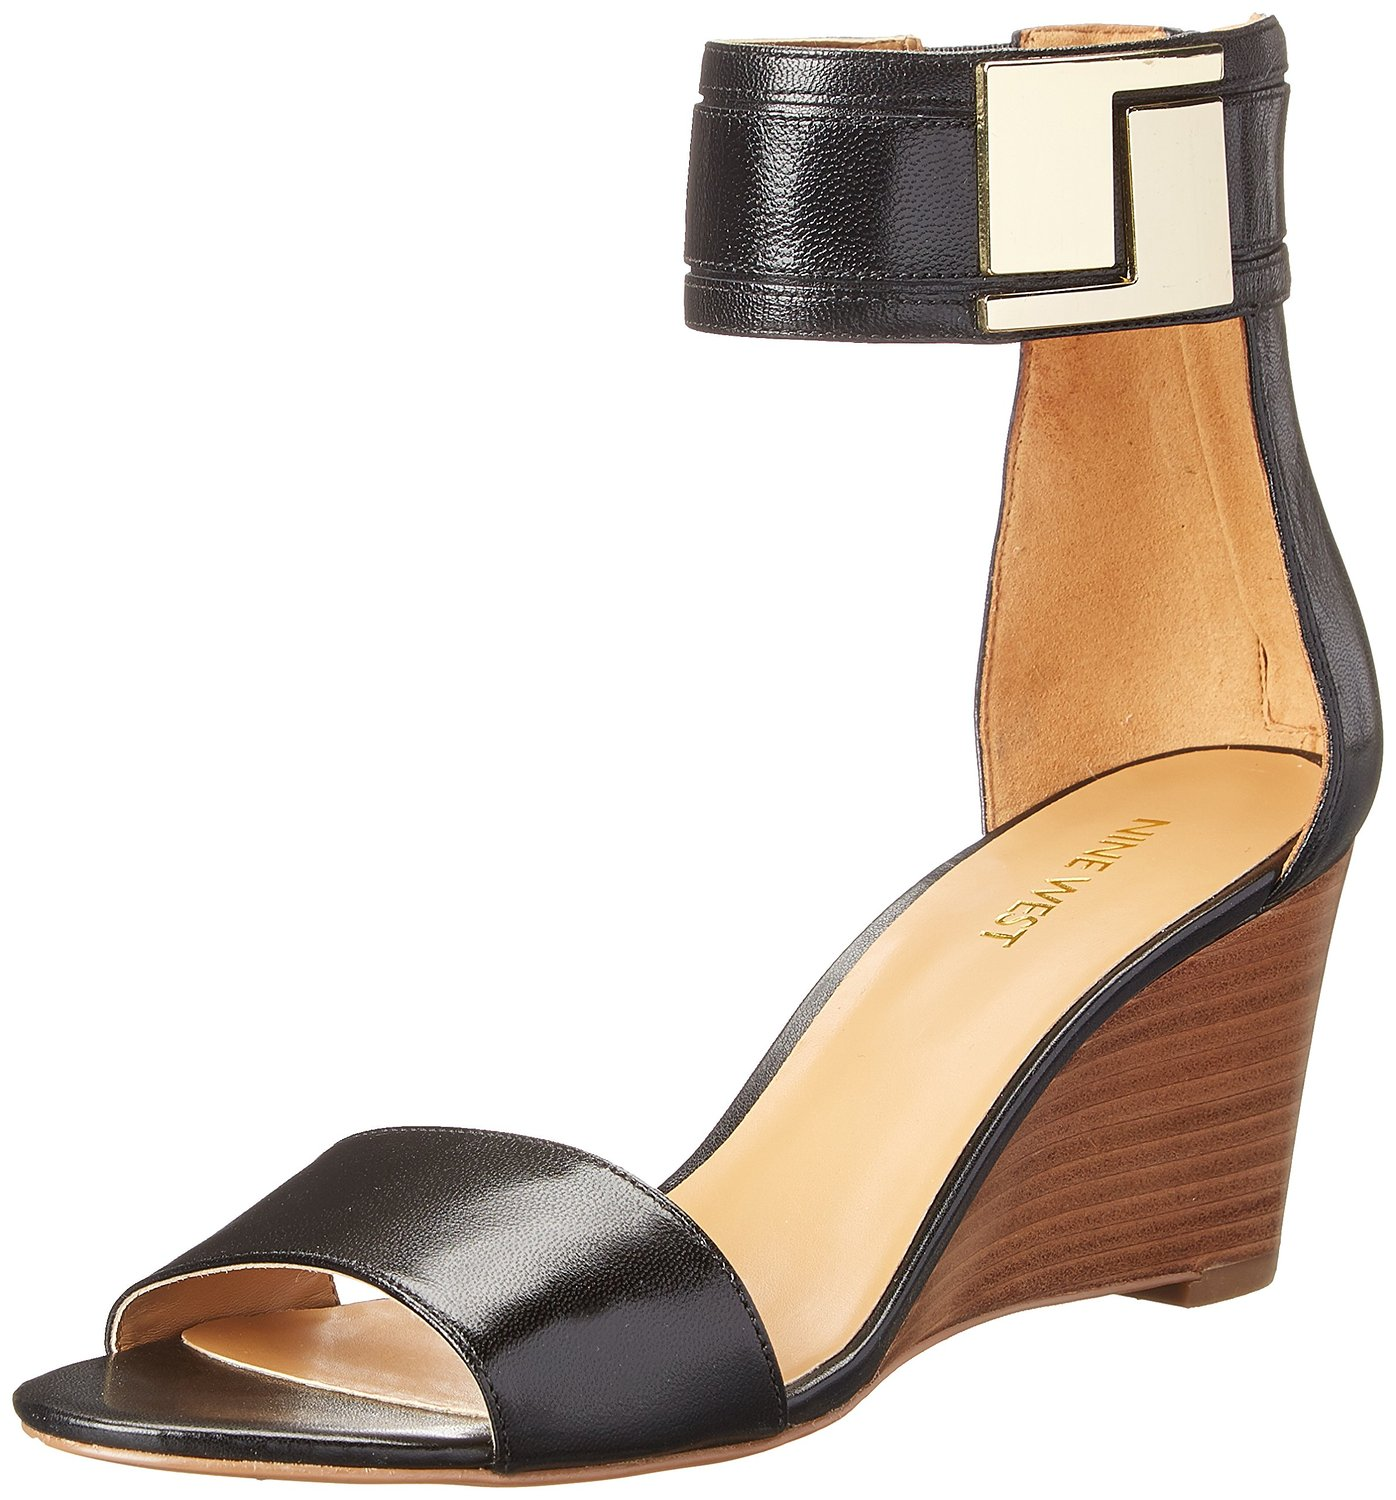 great fit attractivedesigns outlet for sale Nine West Nicetime Leather Wedge Sandal